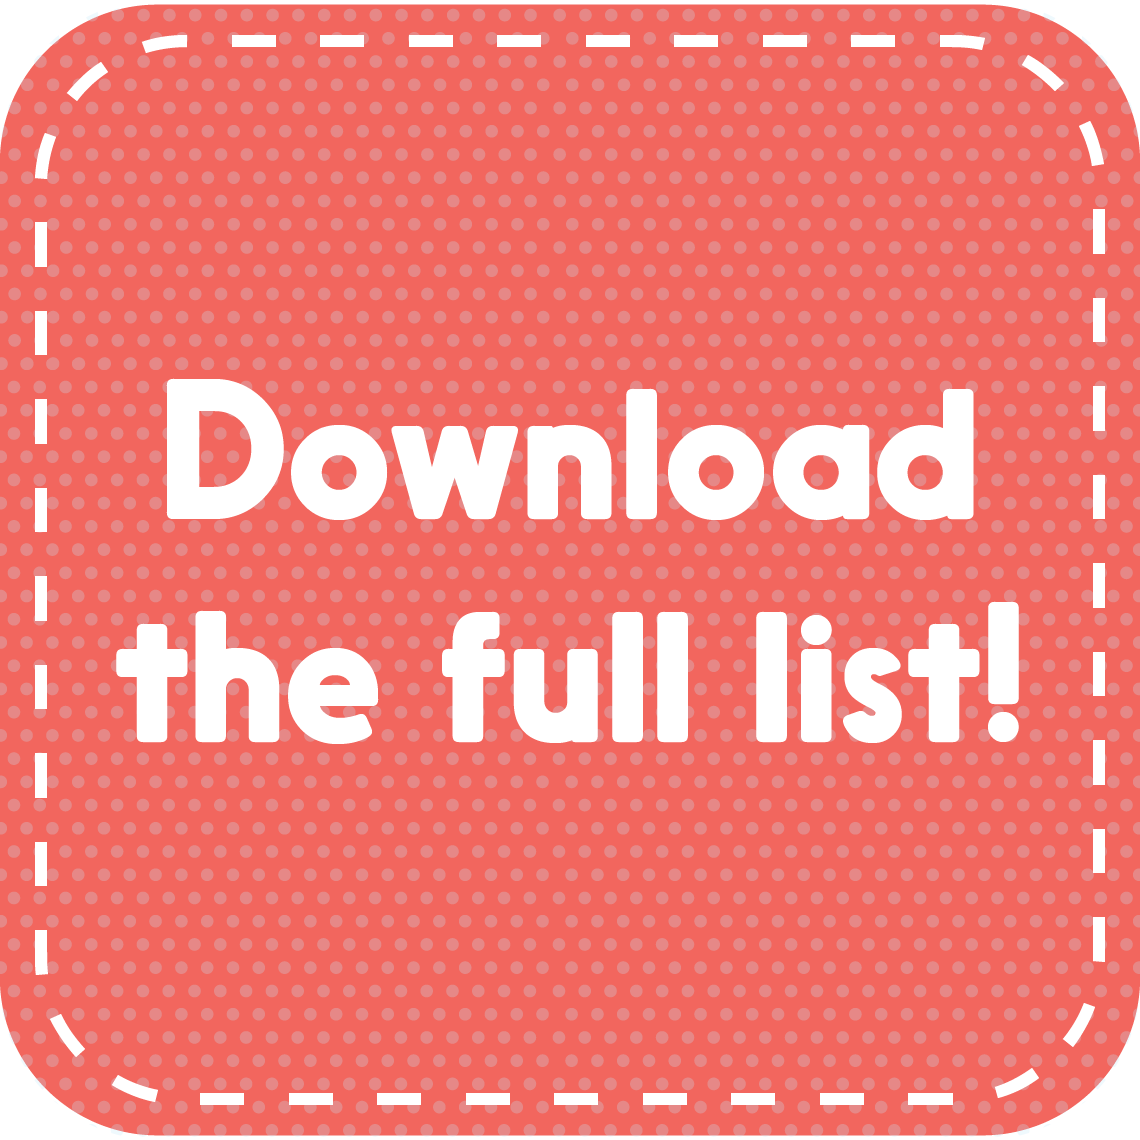 Download the full list